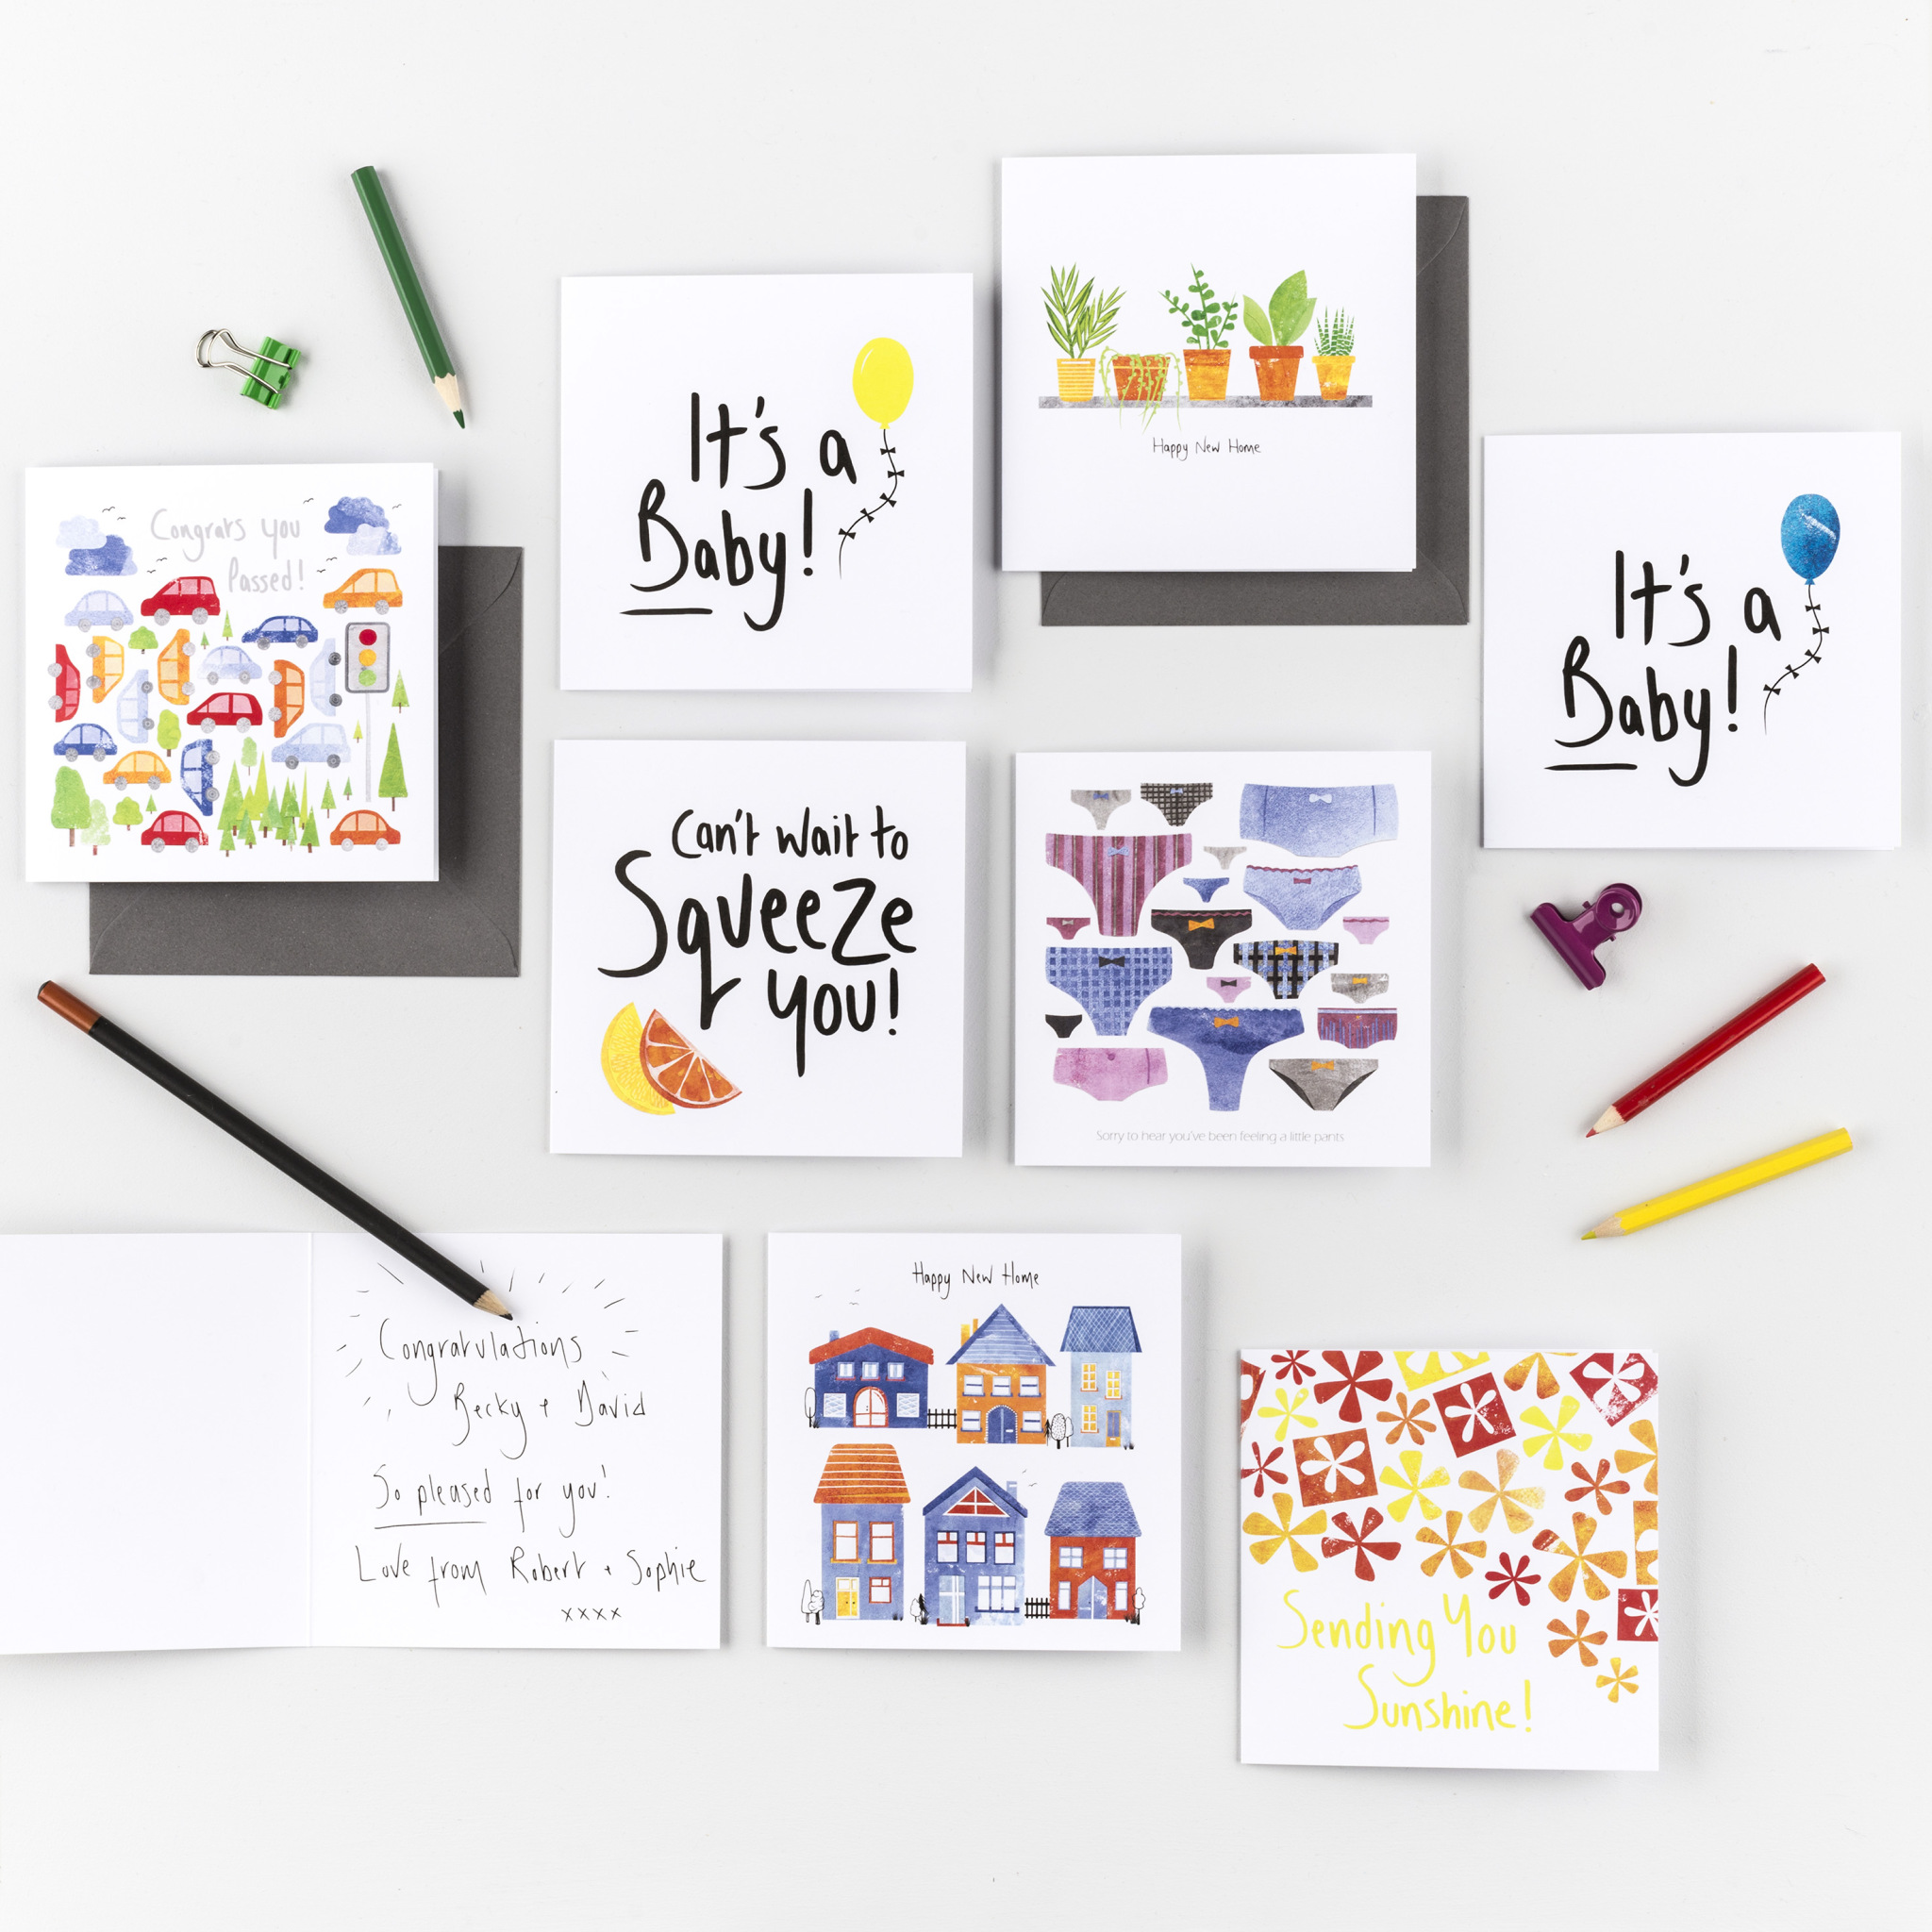 Mother's day present ideas by illustrator Fiona Clabon